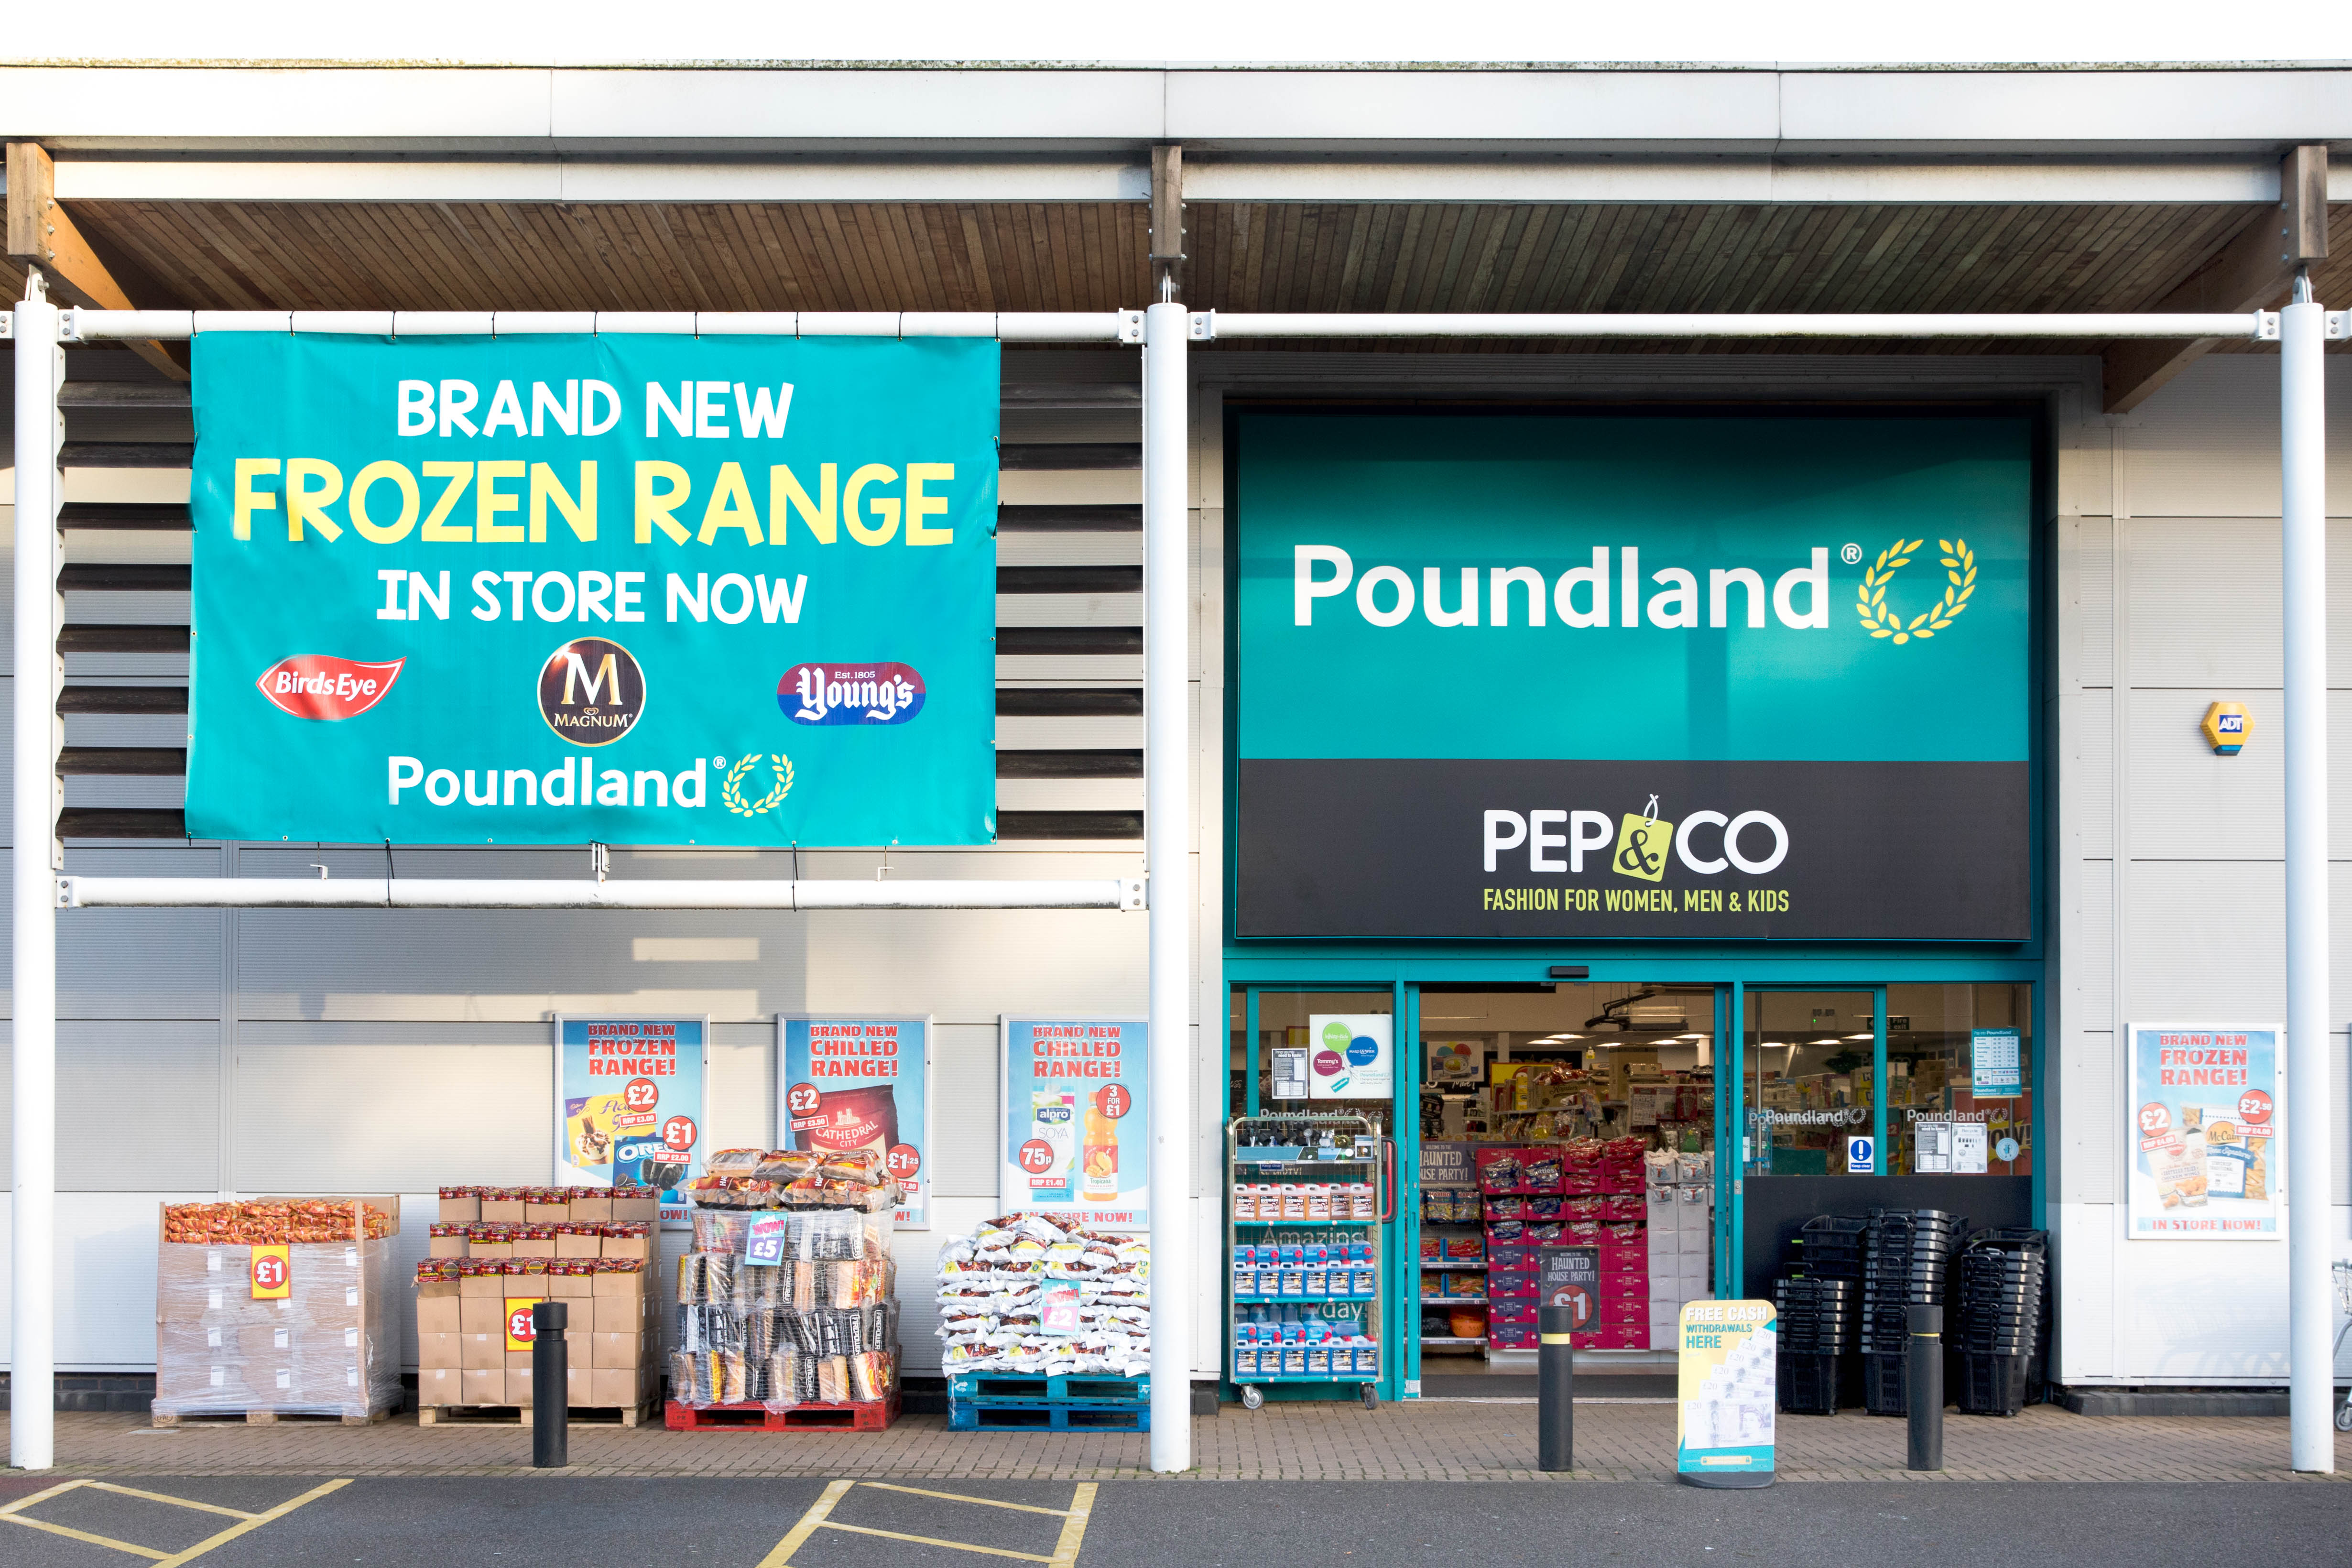 Poundland storefront with new frozen range